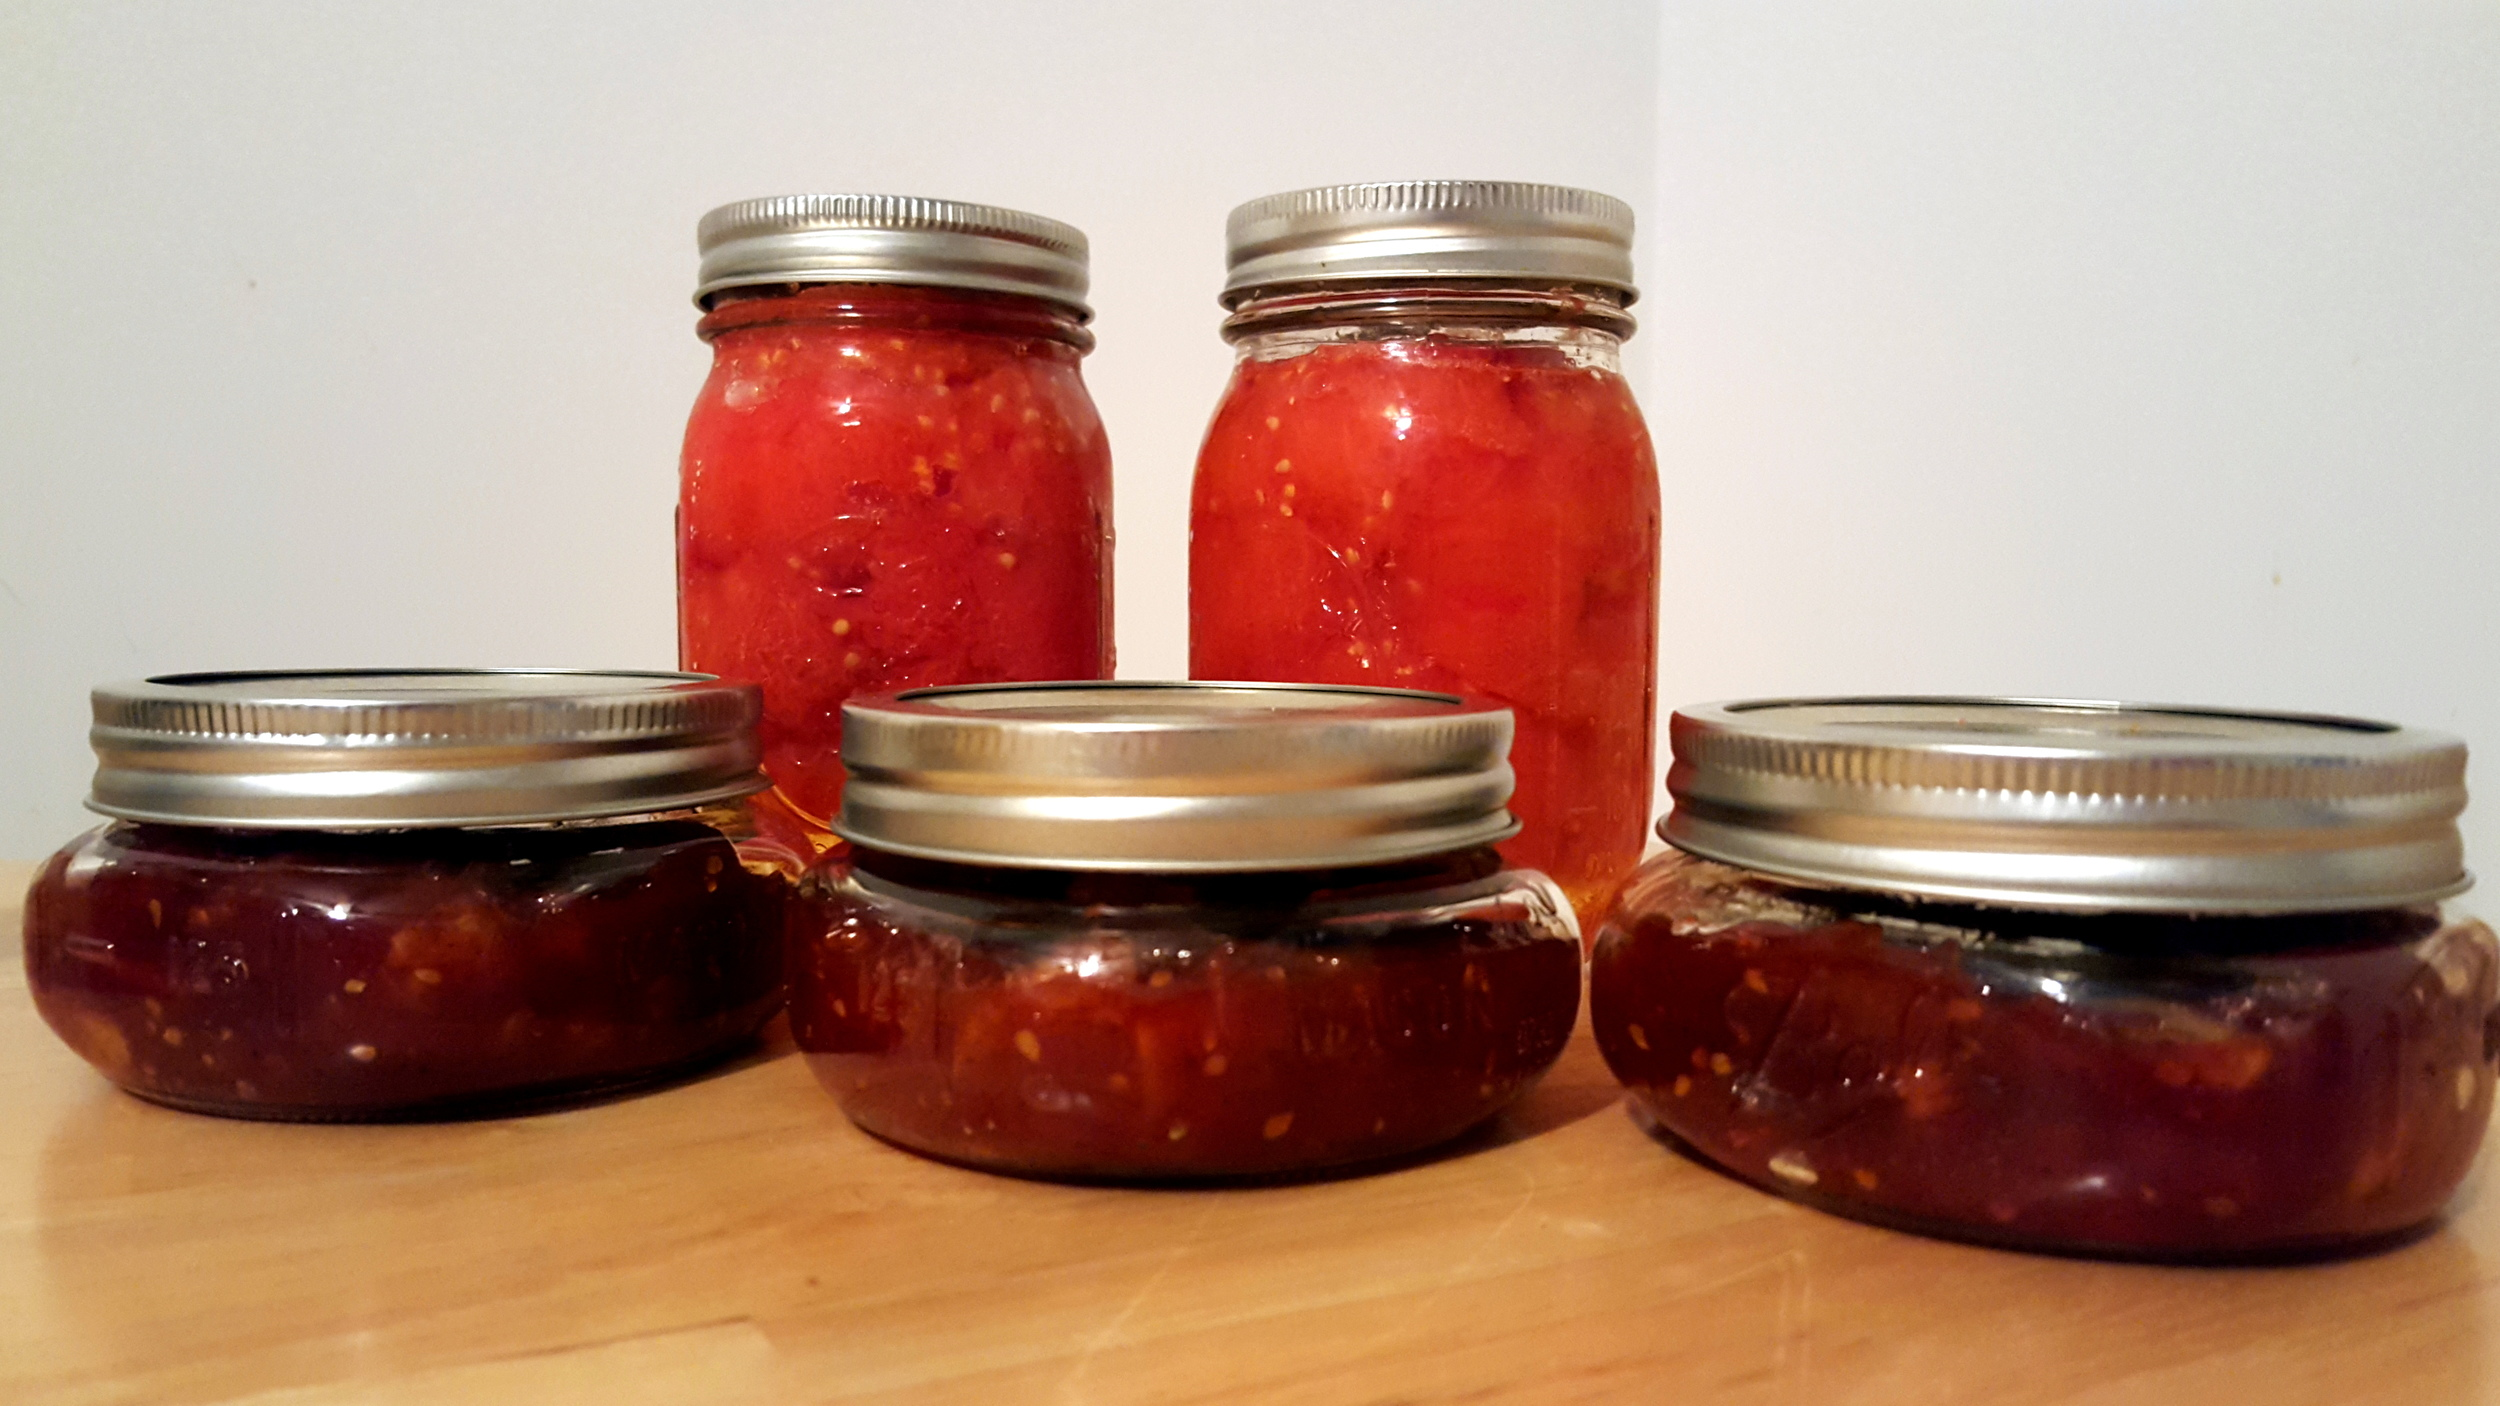 Sweet Tomato Jam and a couple of cans of tomatoes, courtesy of recipes from The Farm Cooking School